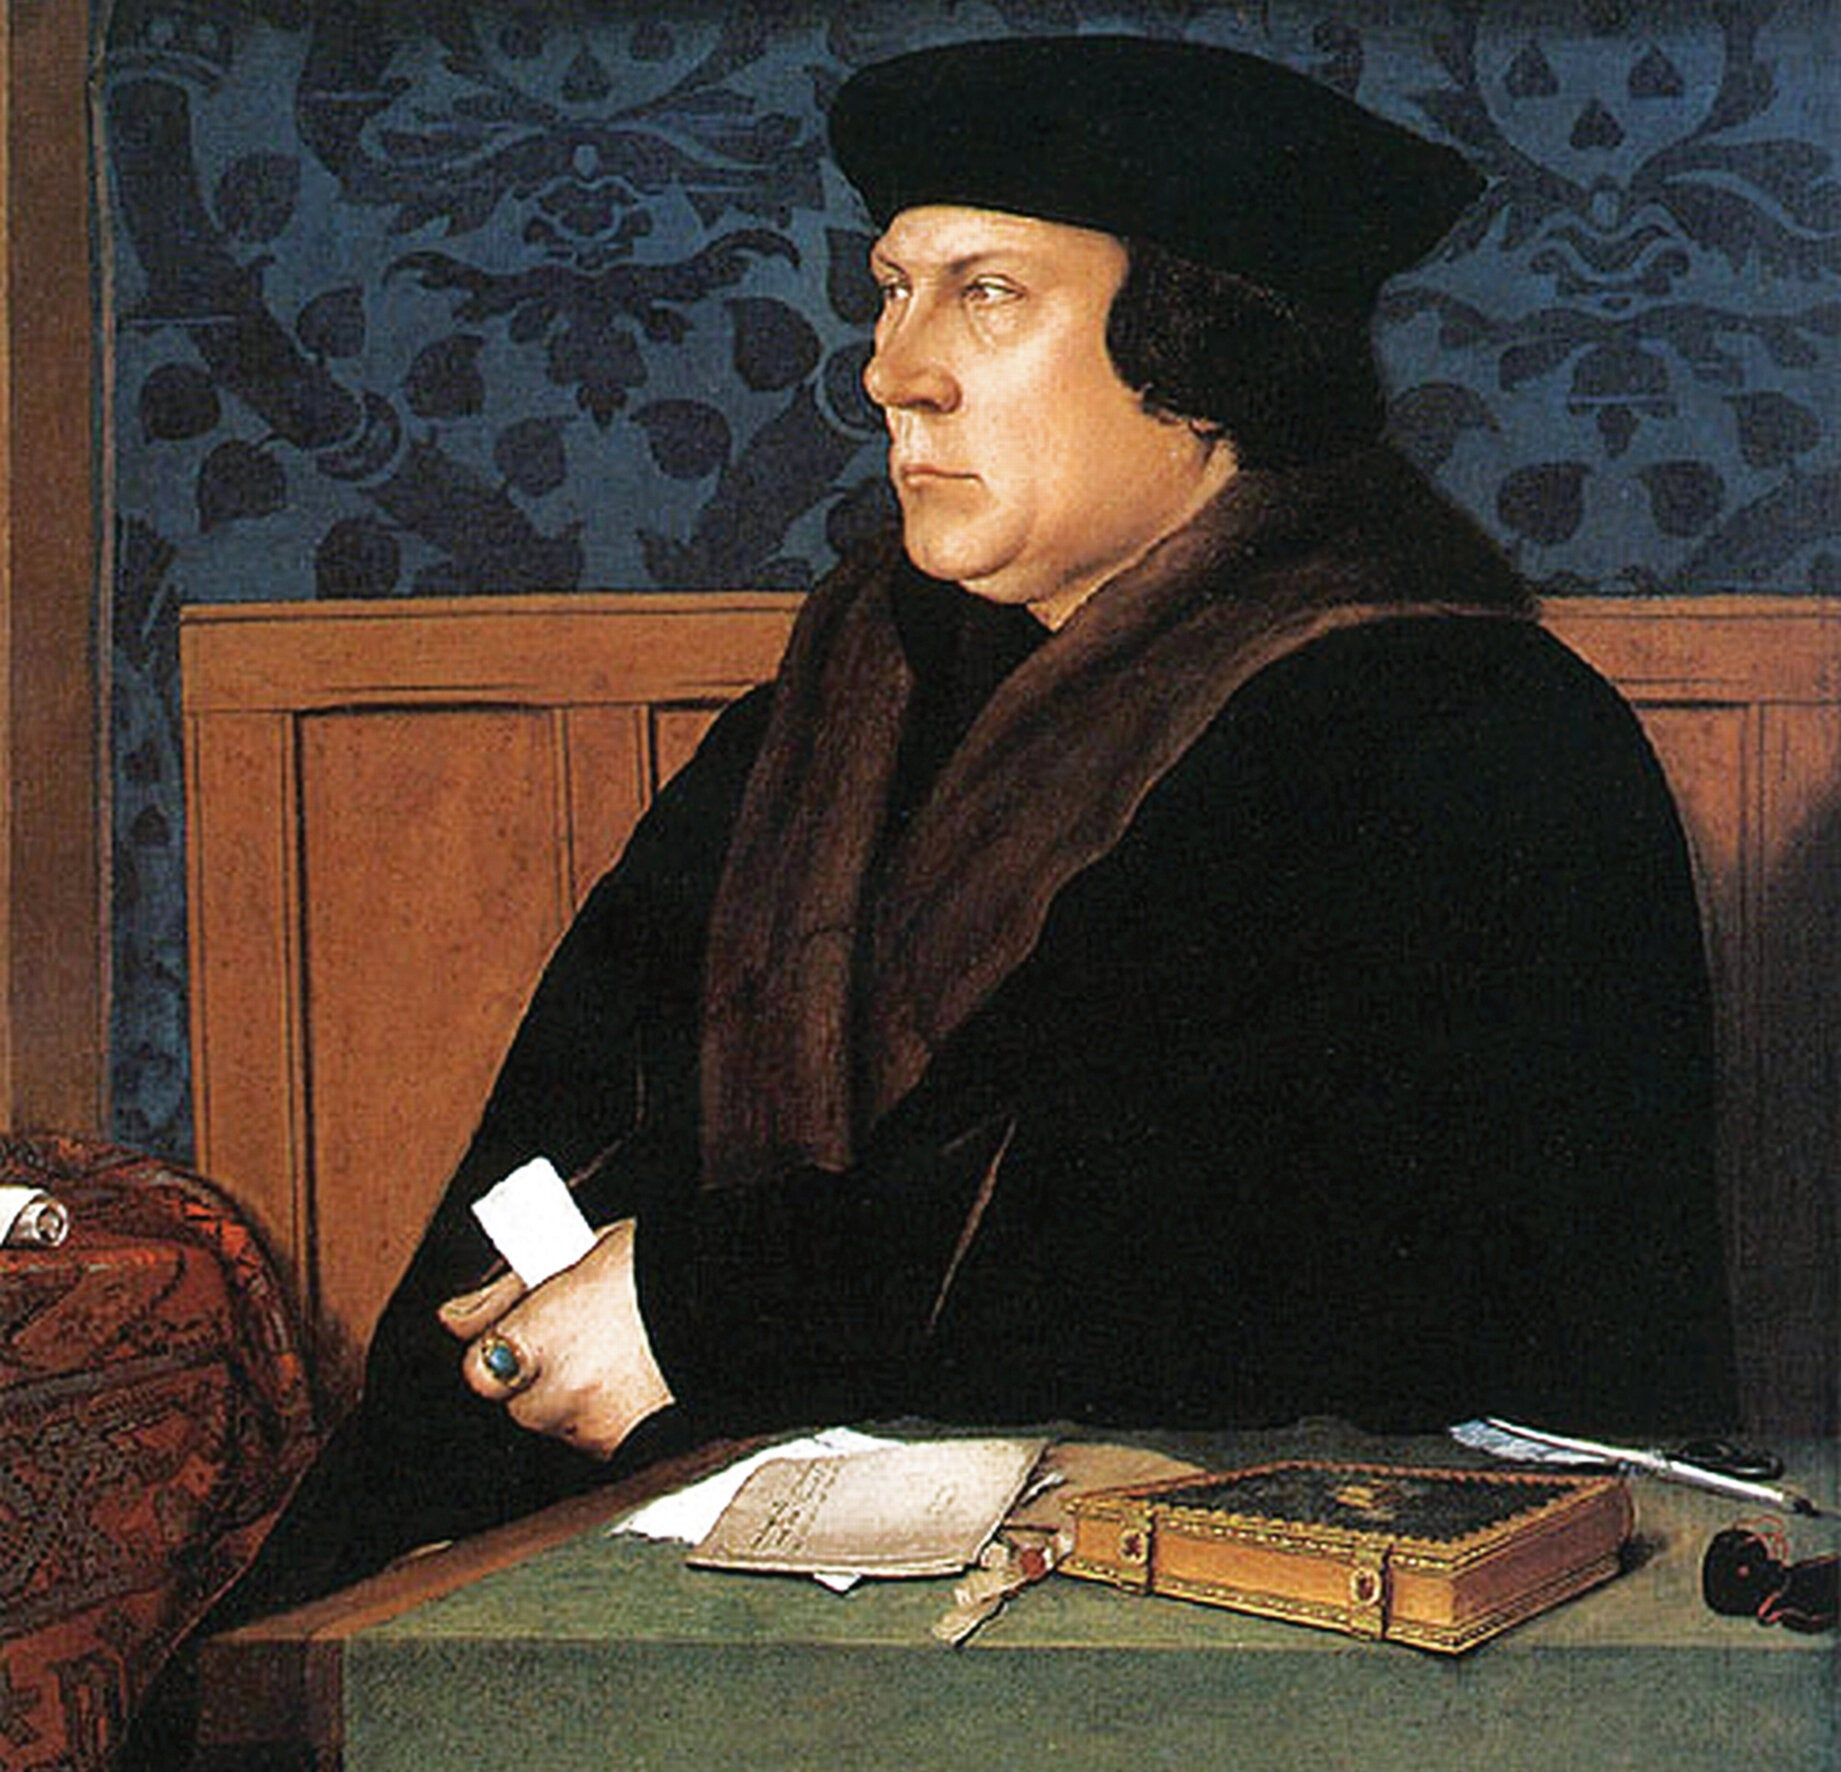 Hilary Mantel's complex, conflicted Thomas Cromwell